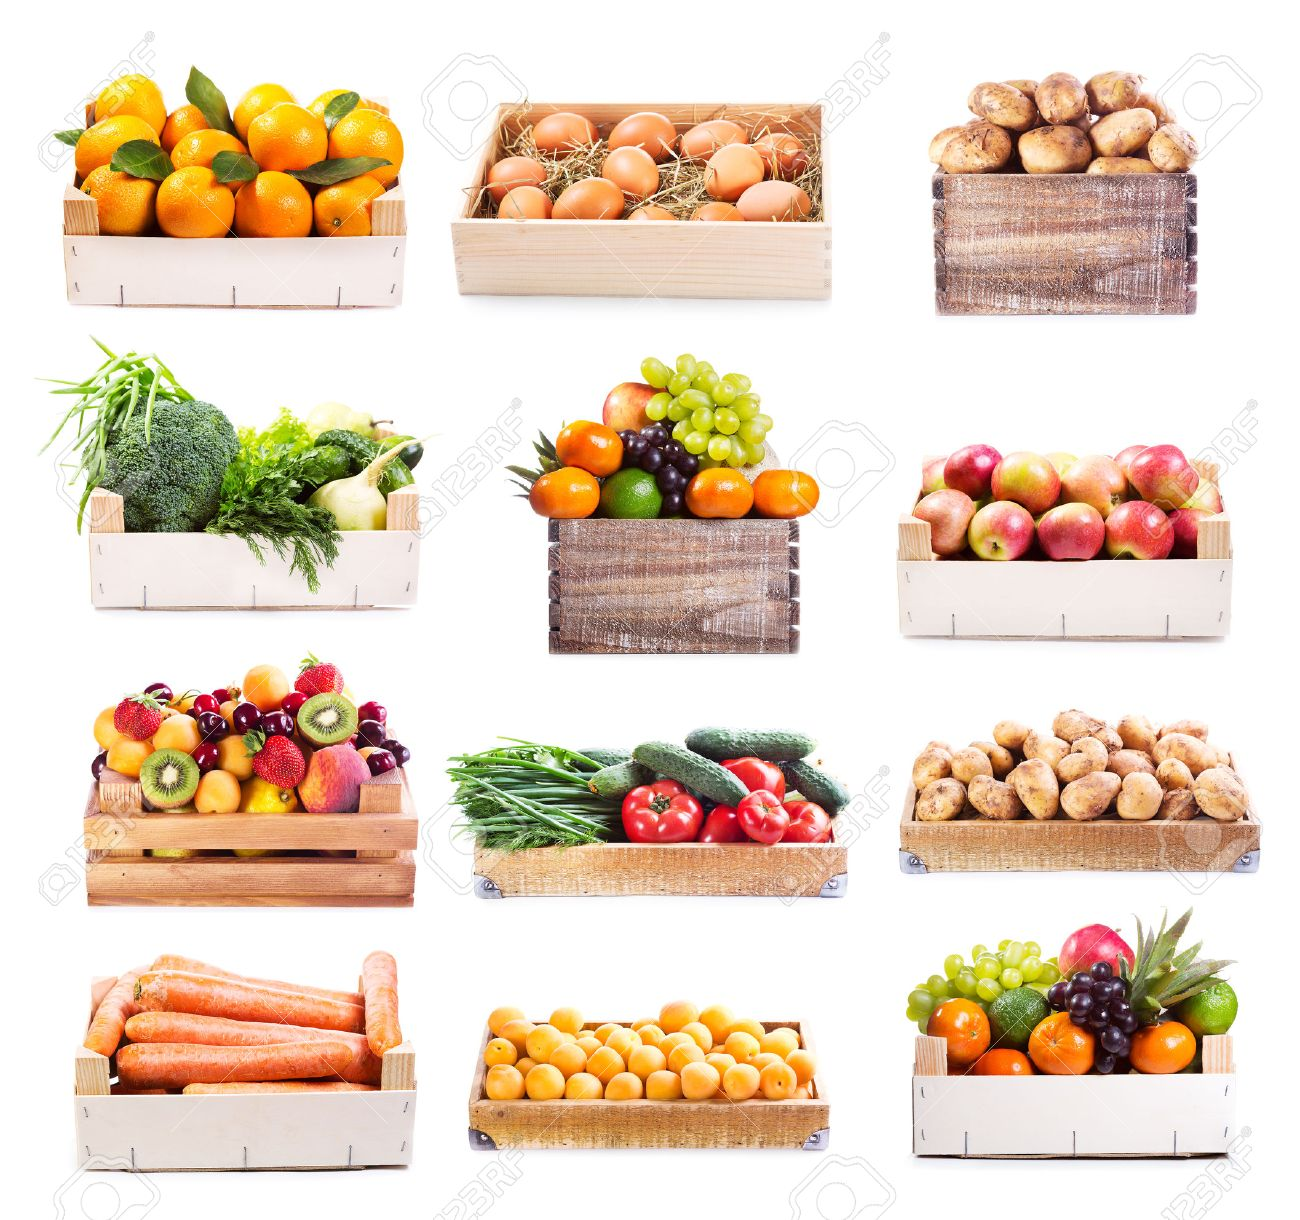 vegetable box stock photos royalty free vegetable box images and